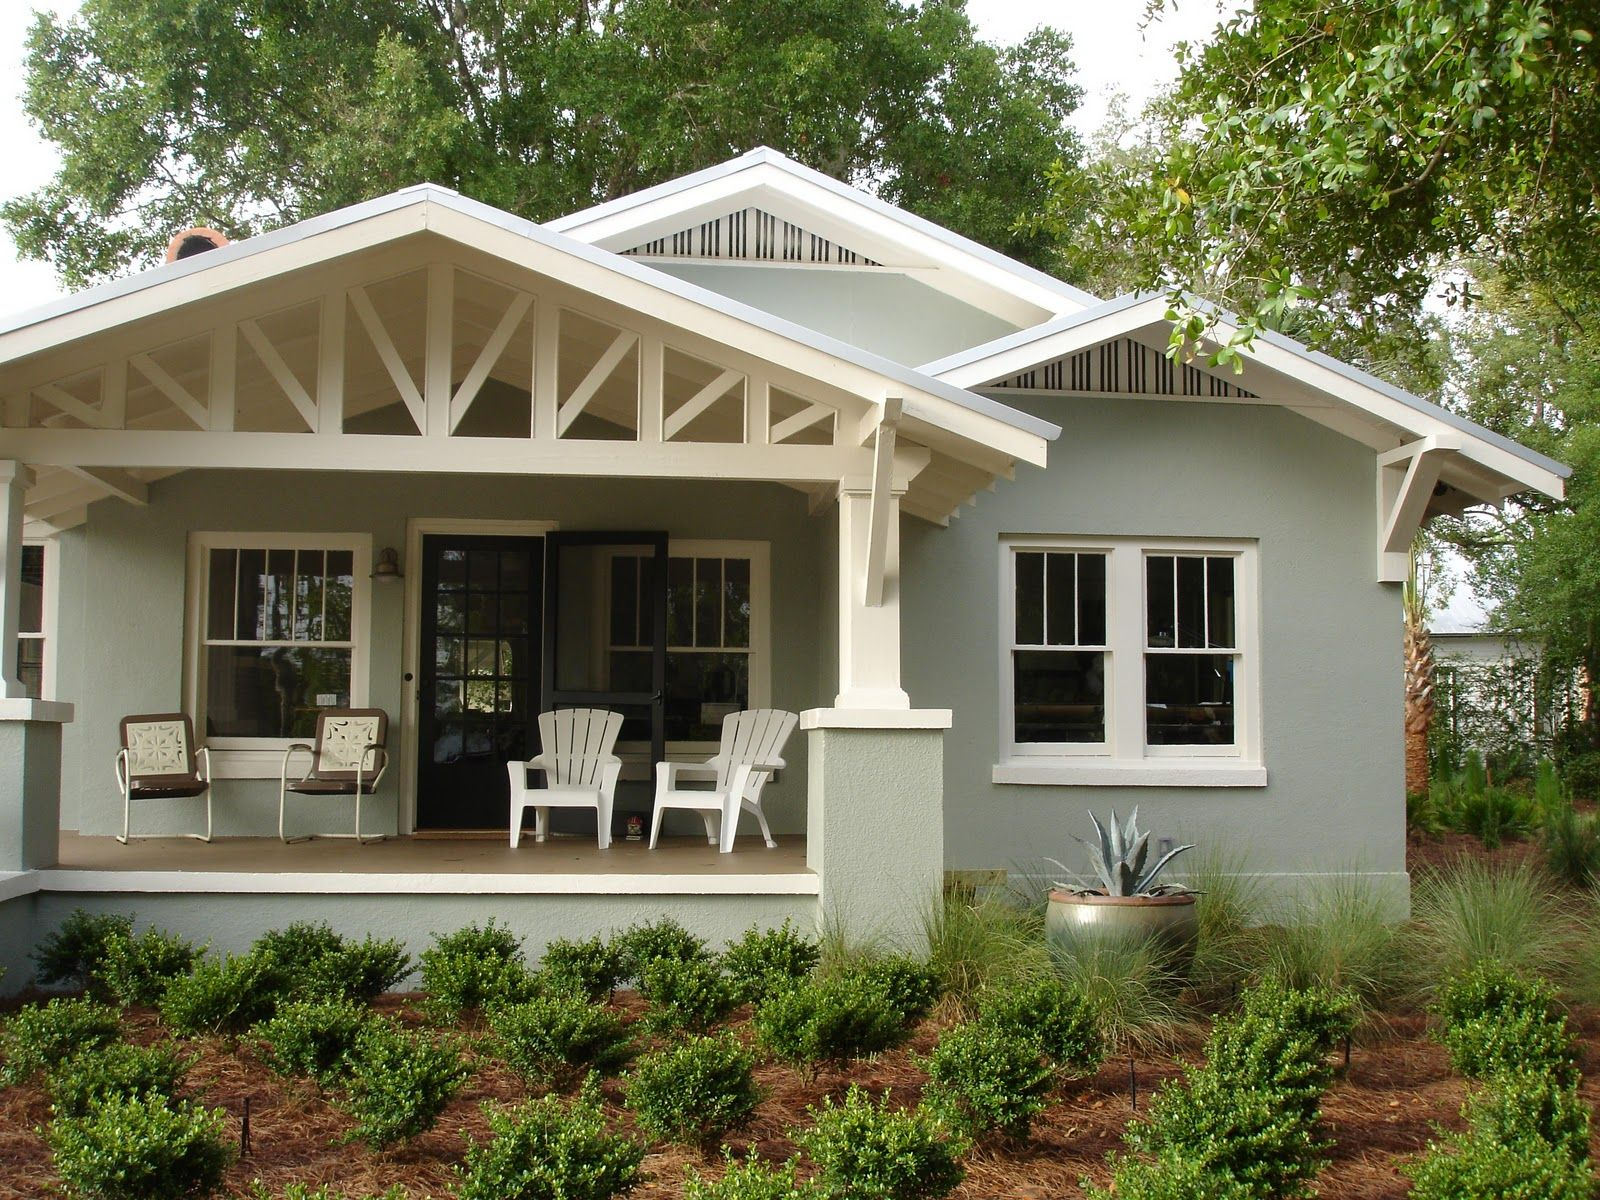 A Craftsman Bungalow Cottage I Did It All 3 Styles In: Did You Know That We Have Grown? Dix.Lathrop Is Proud To